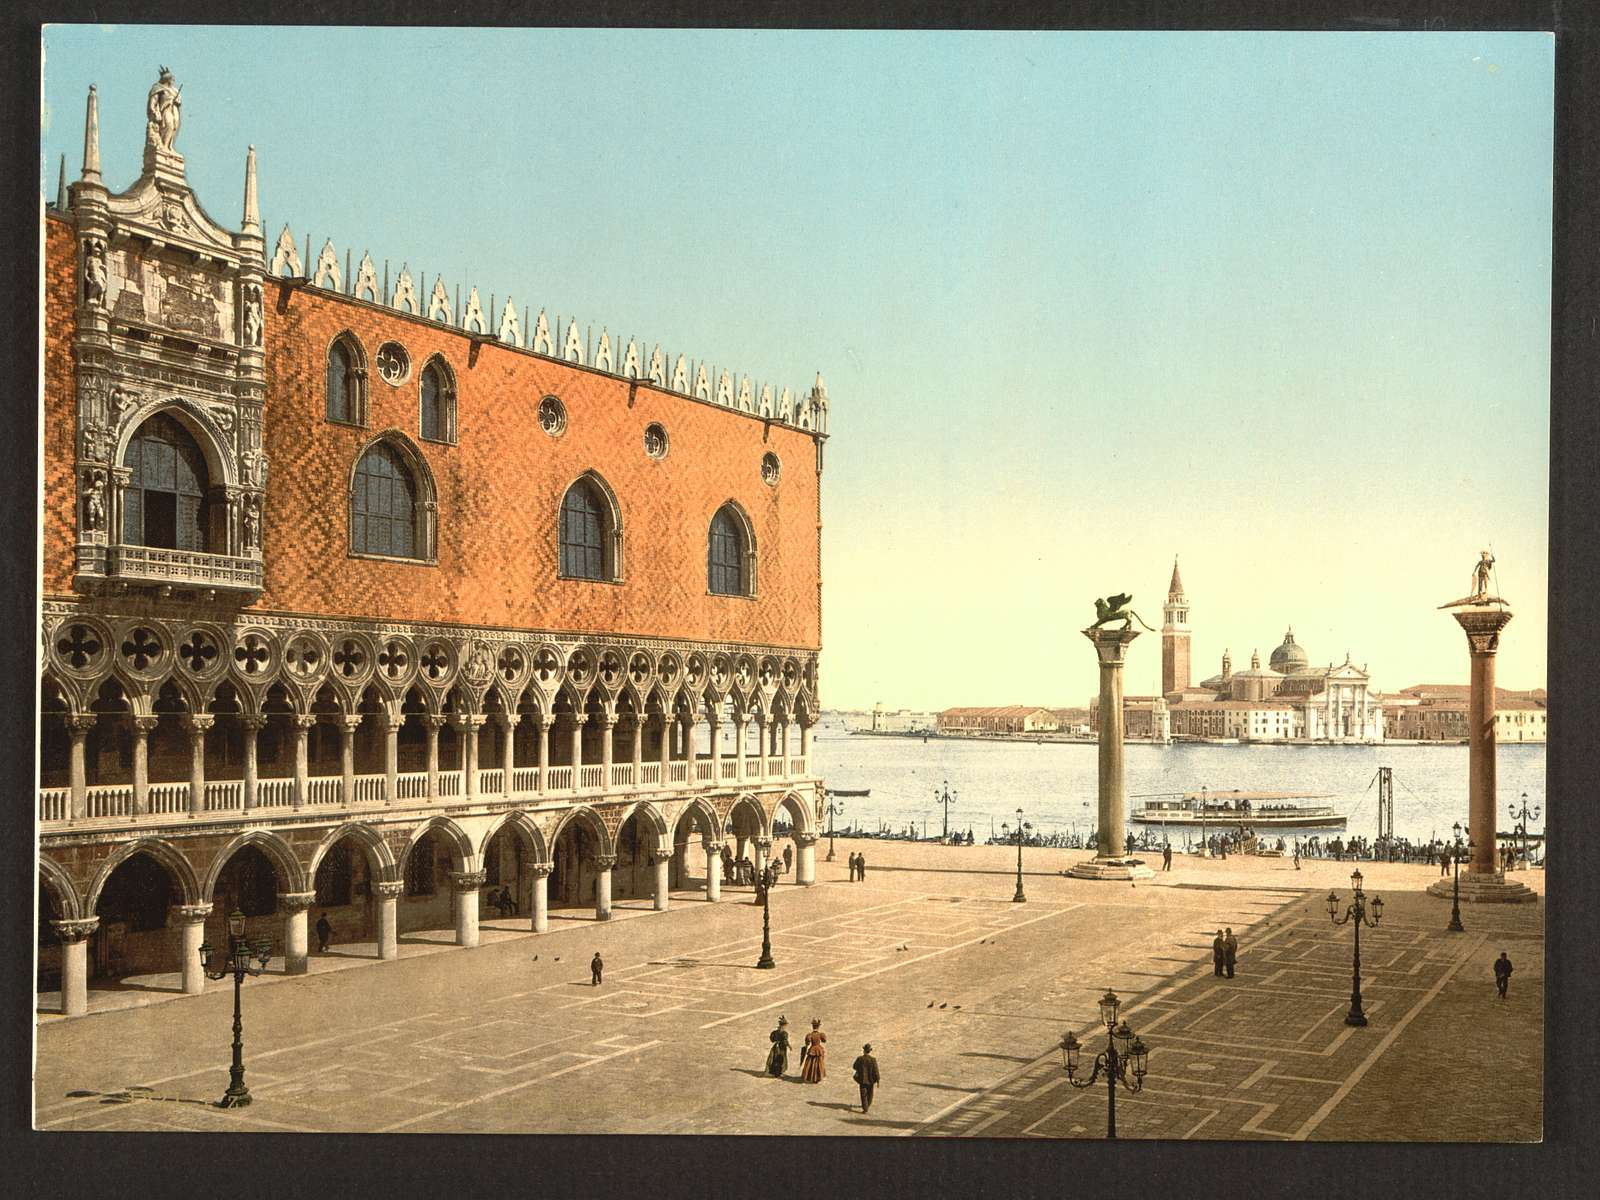 [The Doges' Palace and the Piazzetta, Venice, Italy]